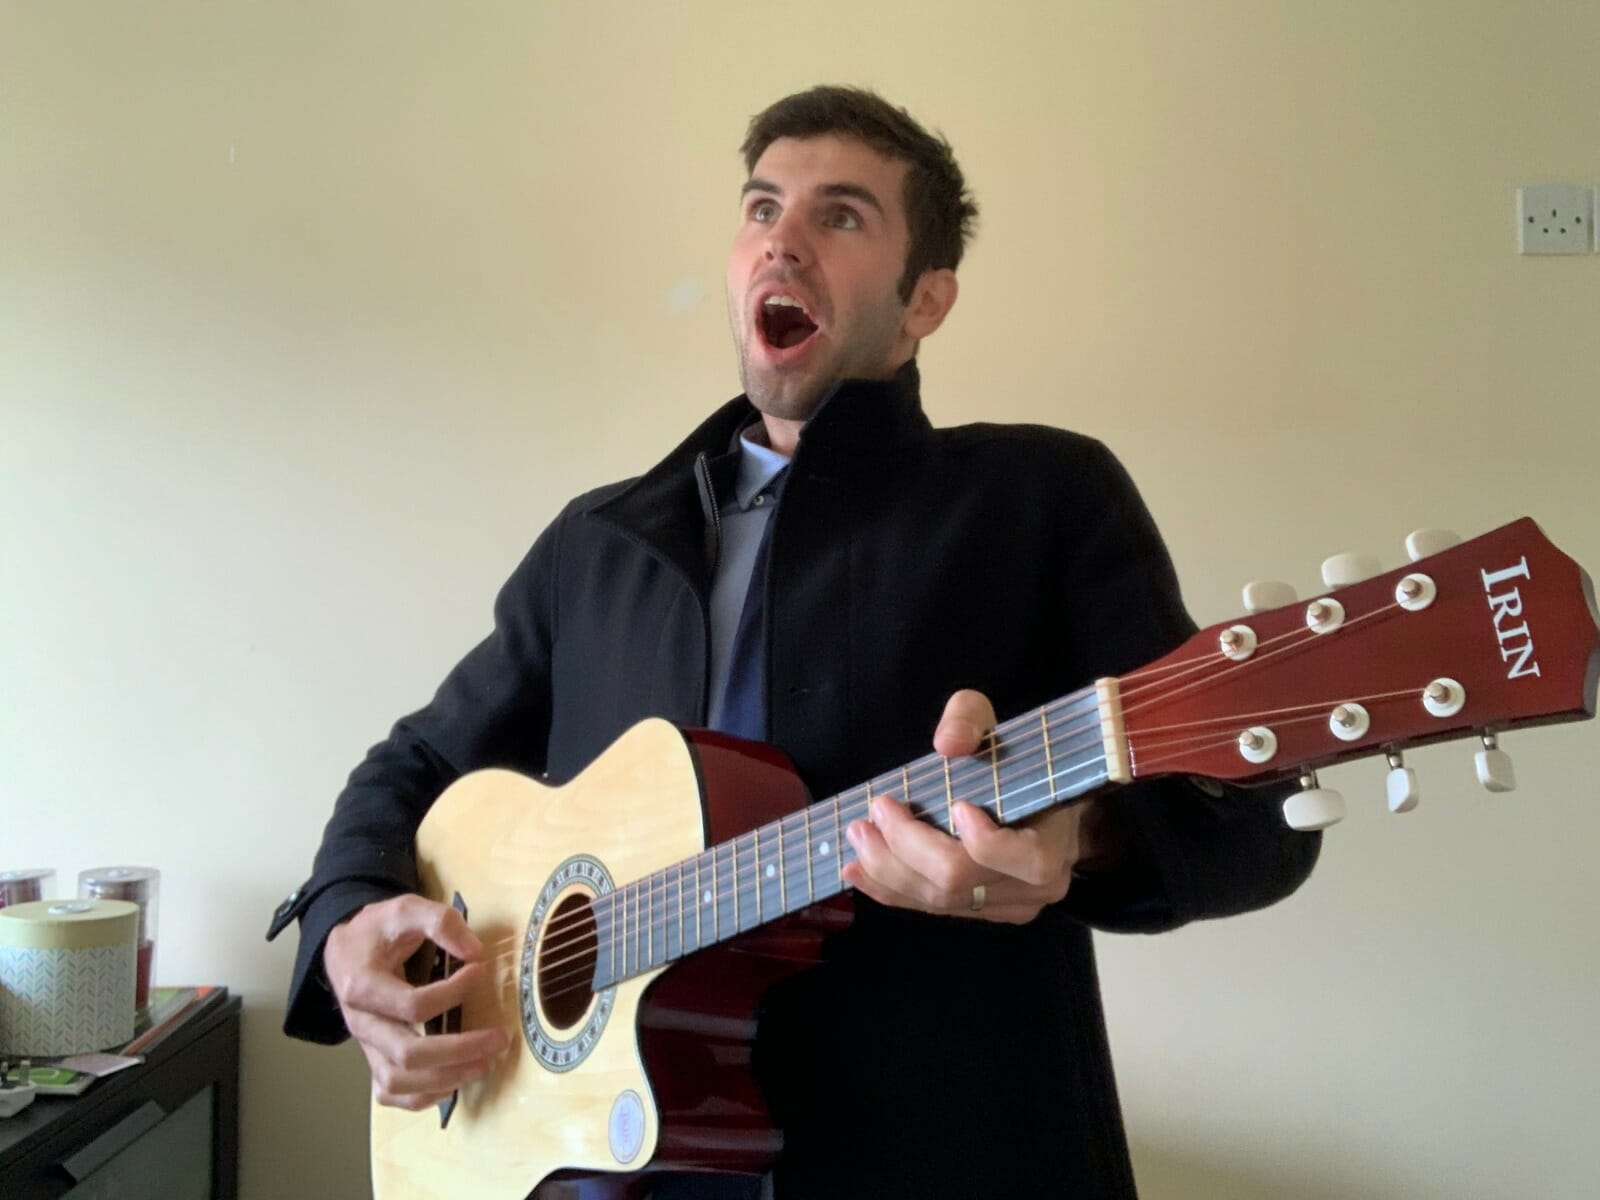 A delegate pretending to play his guitar while playing Orangeworks remote team building activity Picture Perfect.